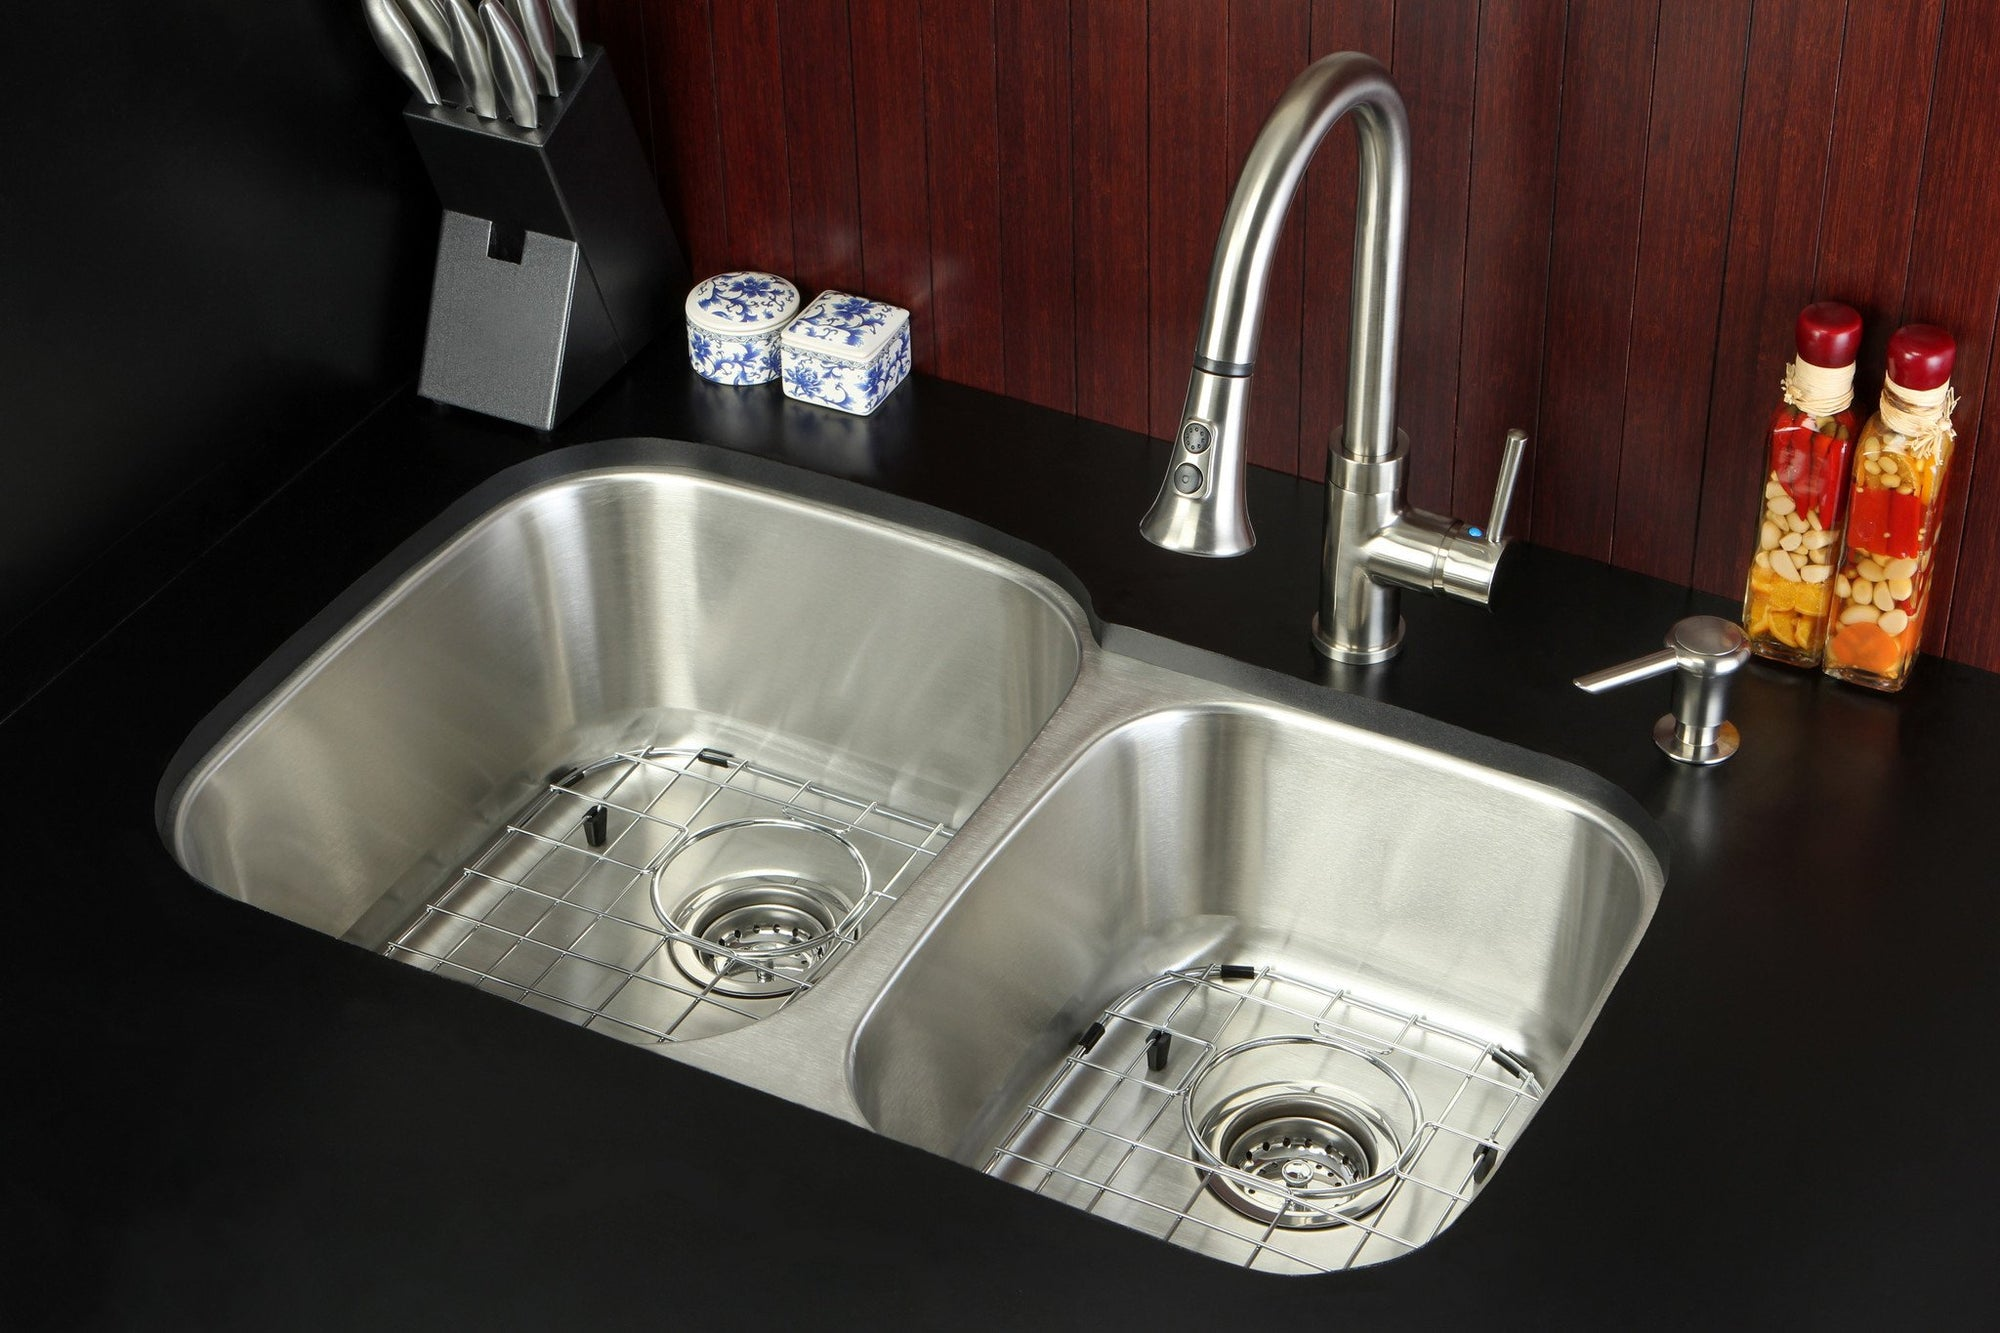 Stainless Steel 2 Bowl Kitchen Sink, Faucet, Strainer, Grid & Soap ...